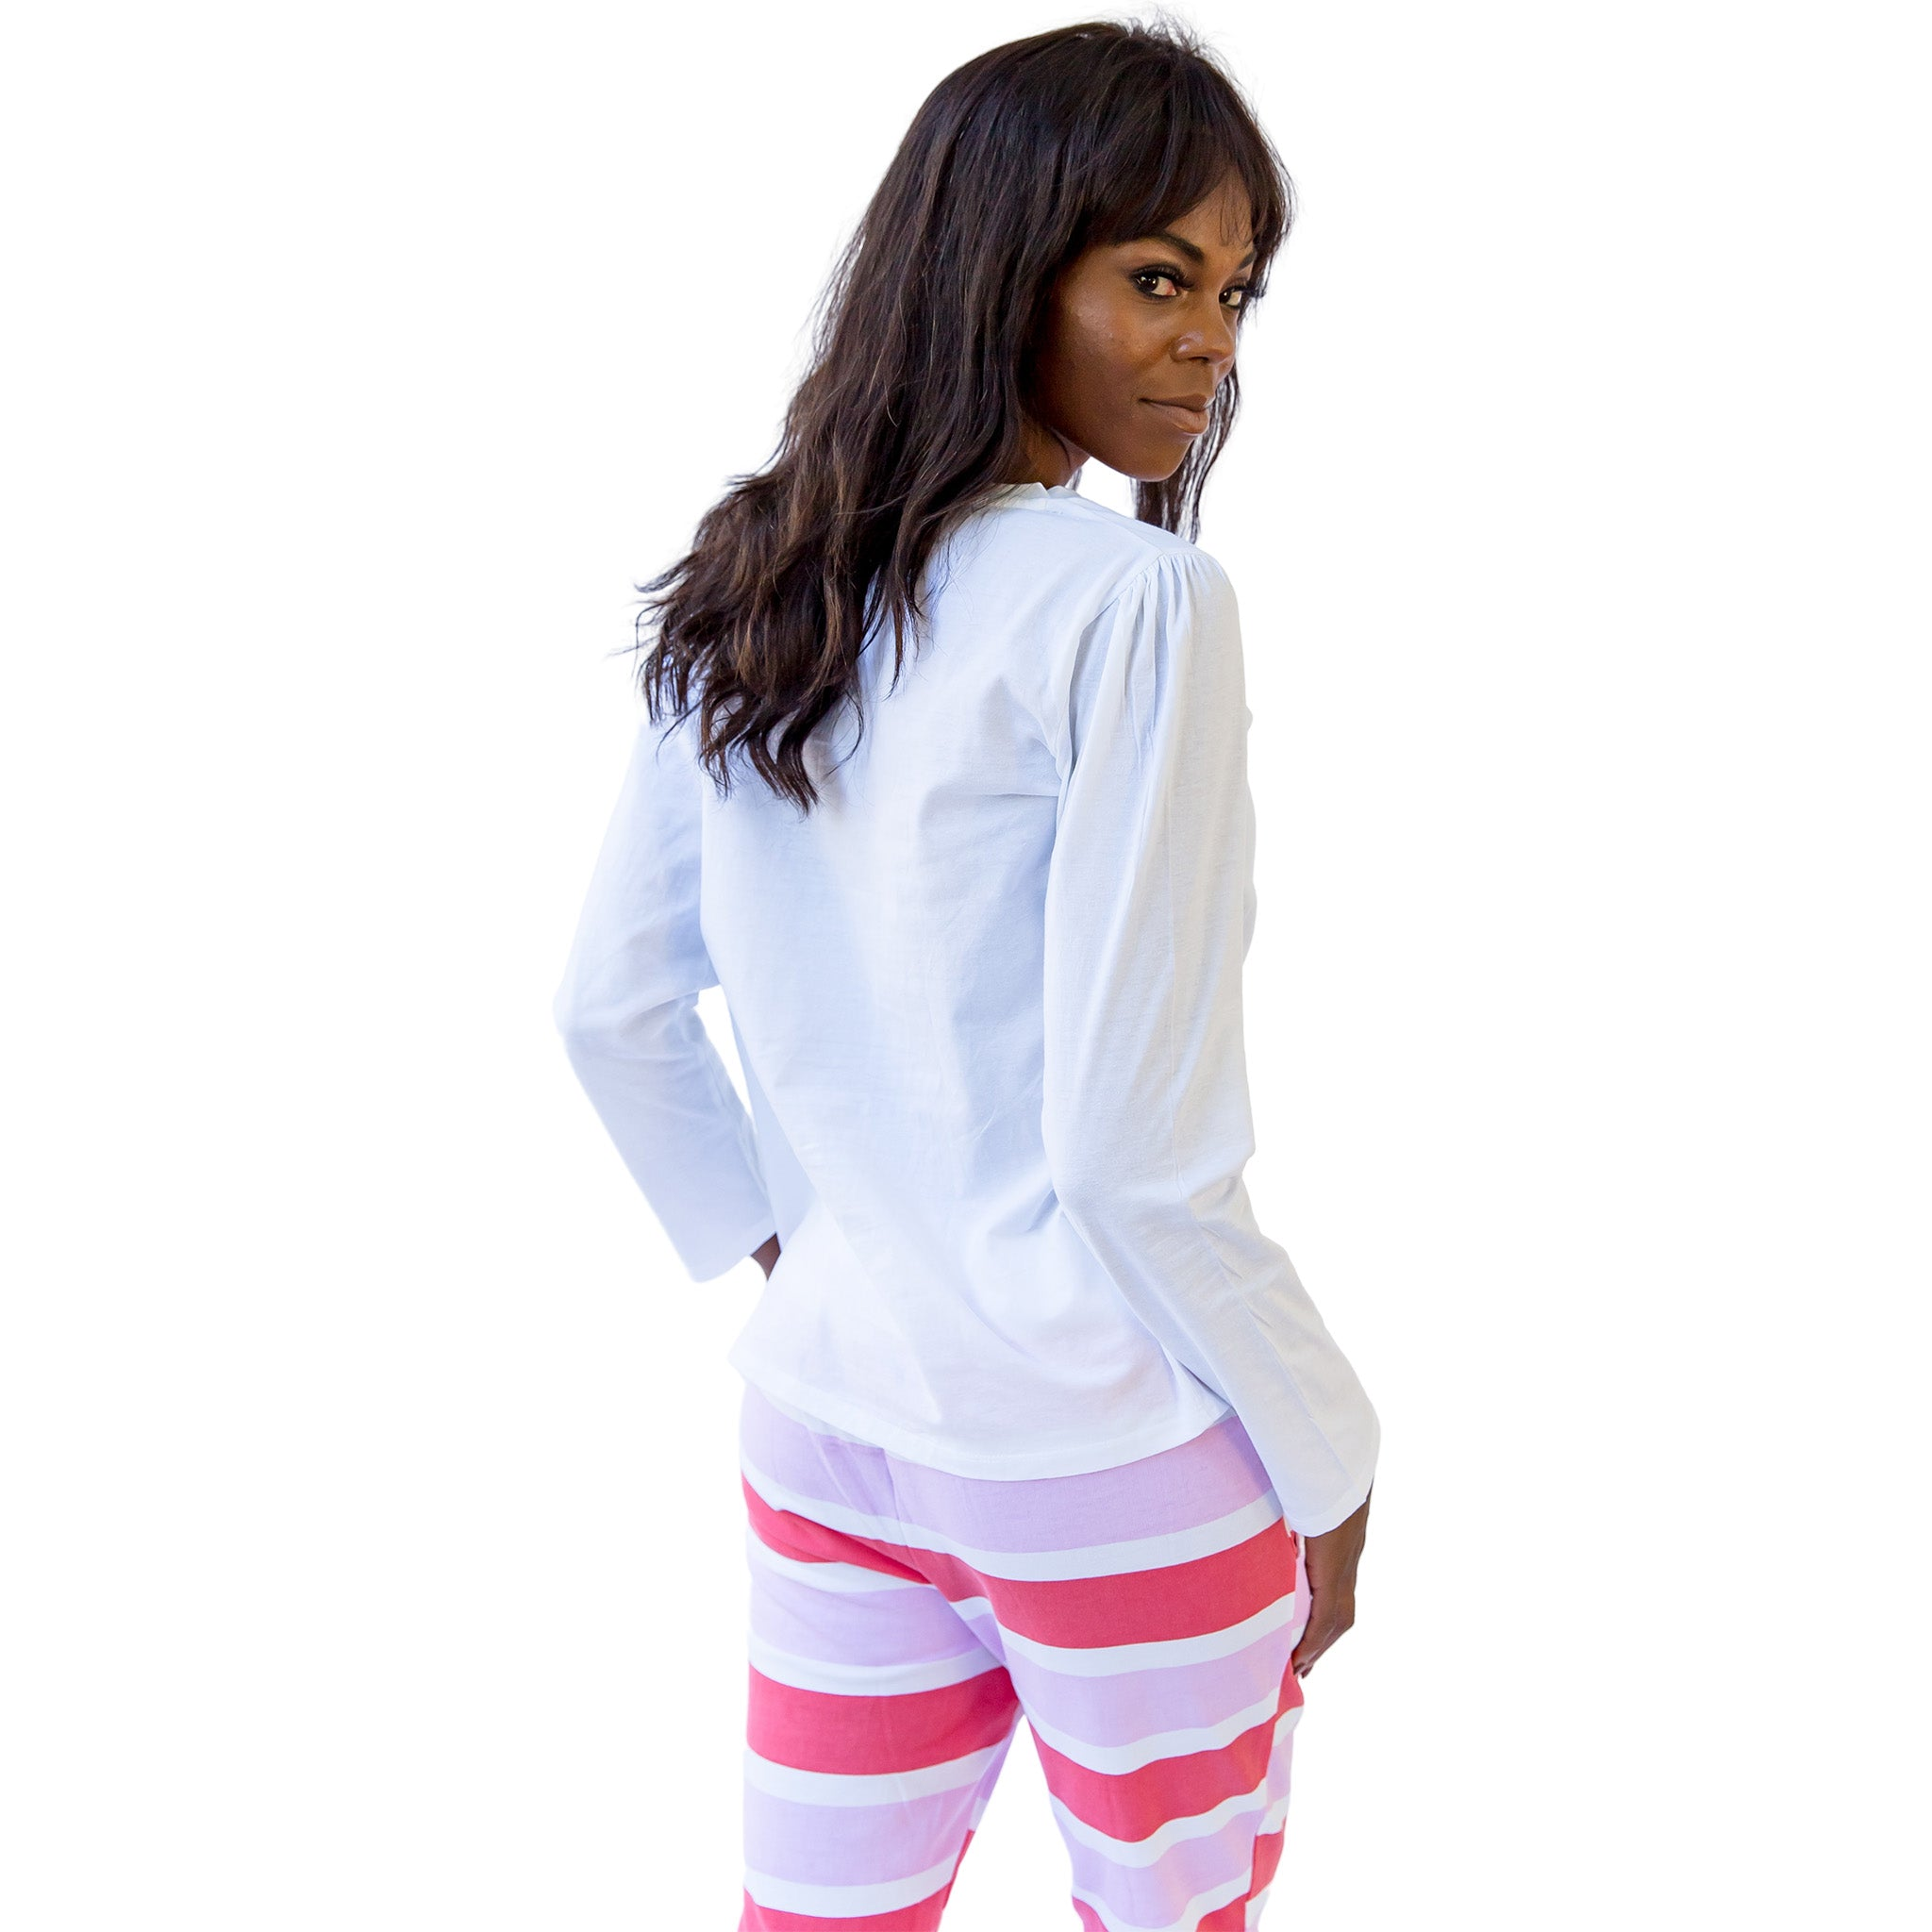 Women's White Jersey Long Sleeve Top